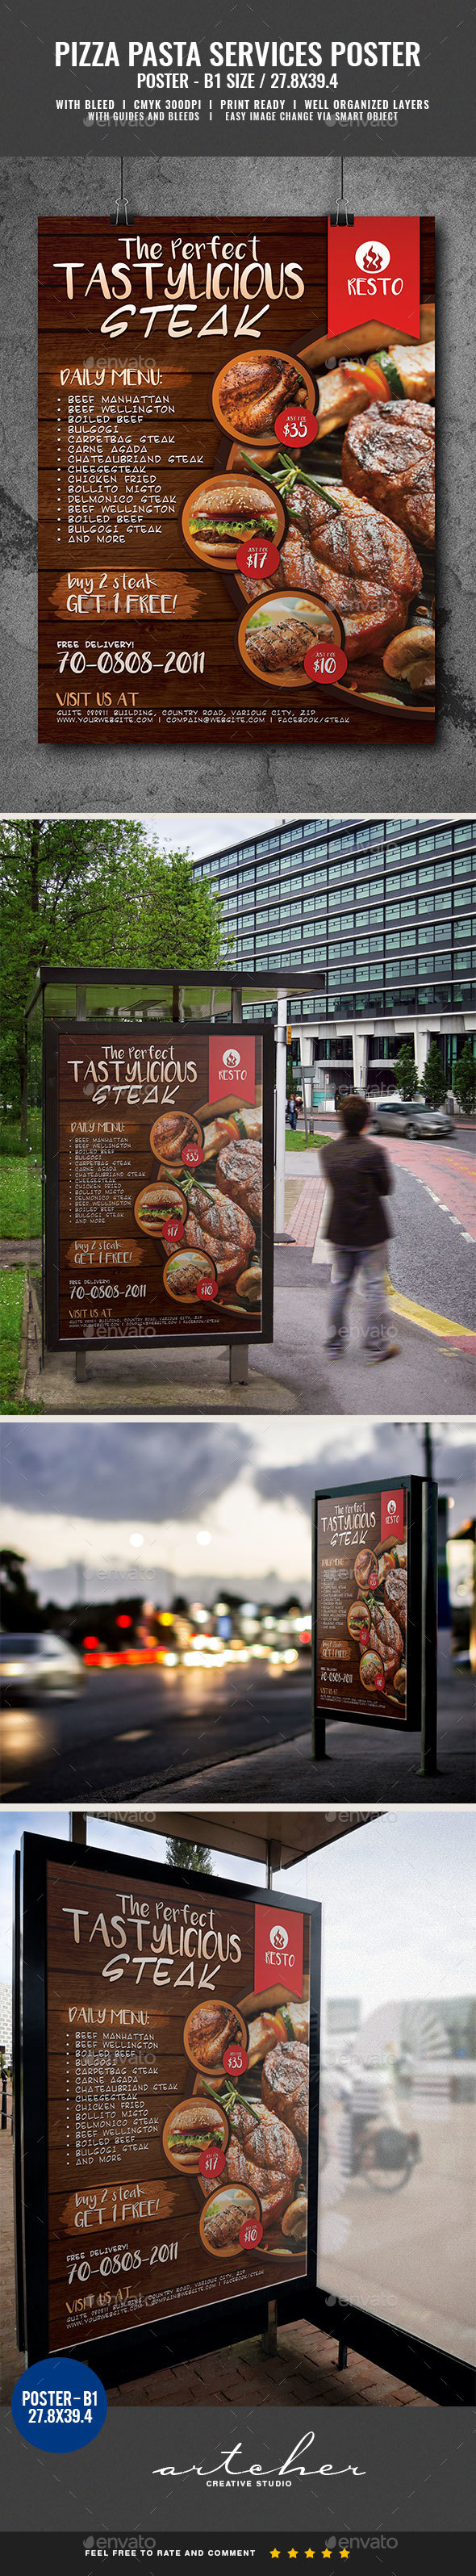 Restaurant Fast Food Steak Poster - Signage Print Templates